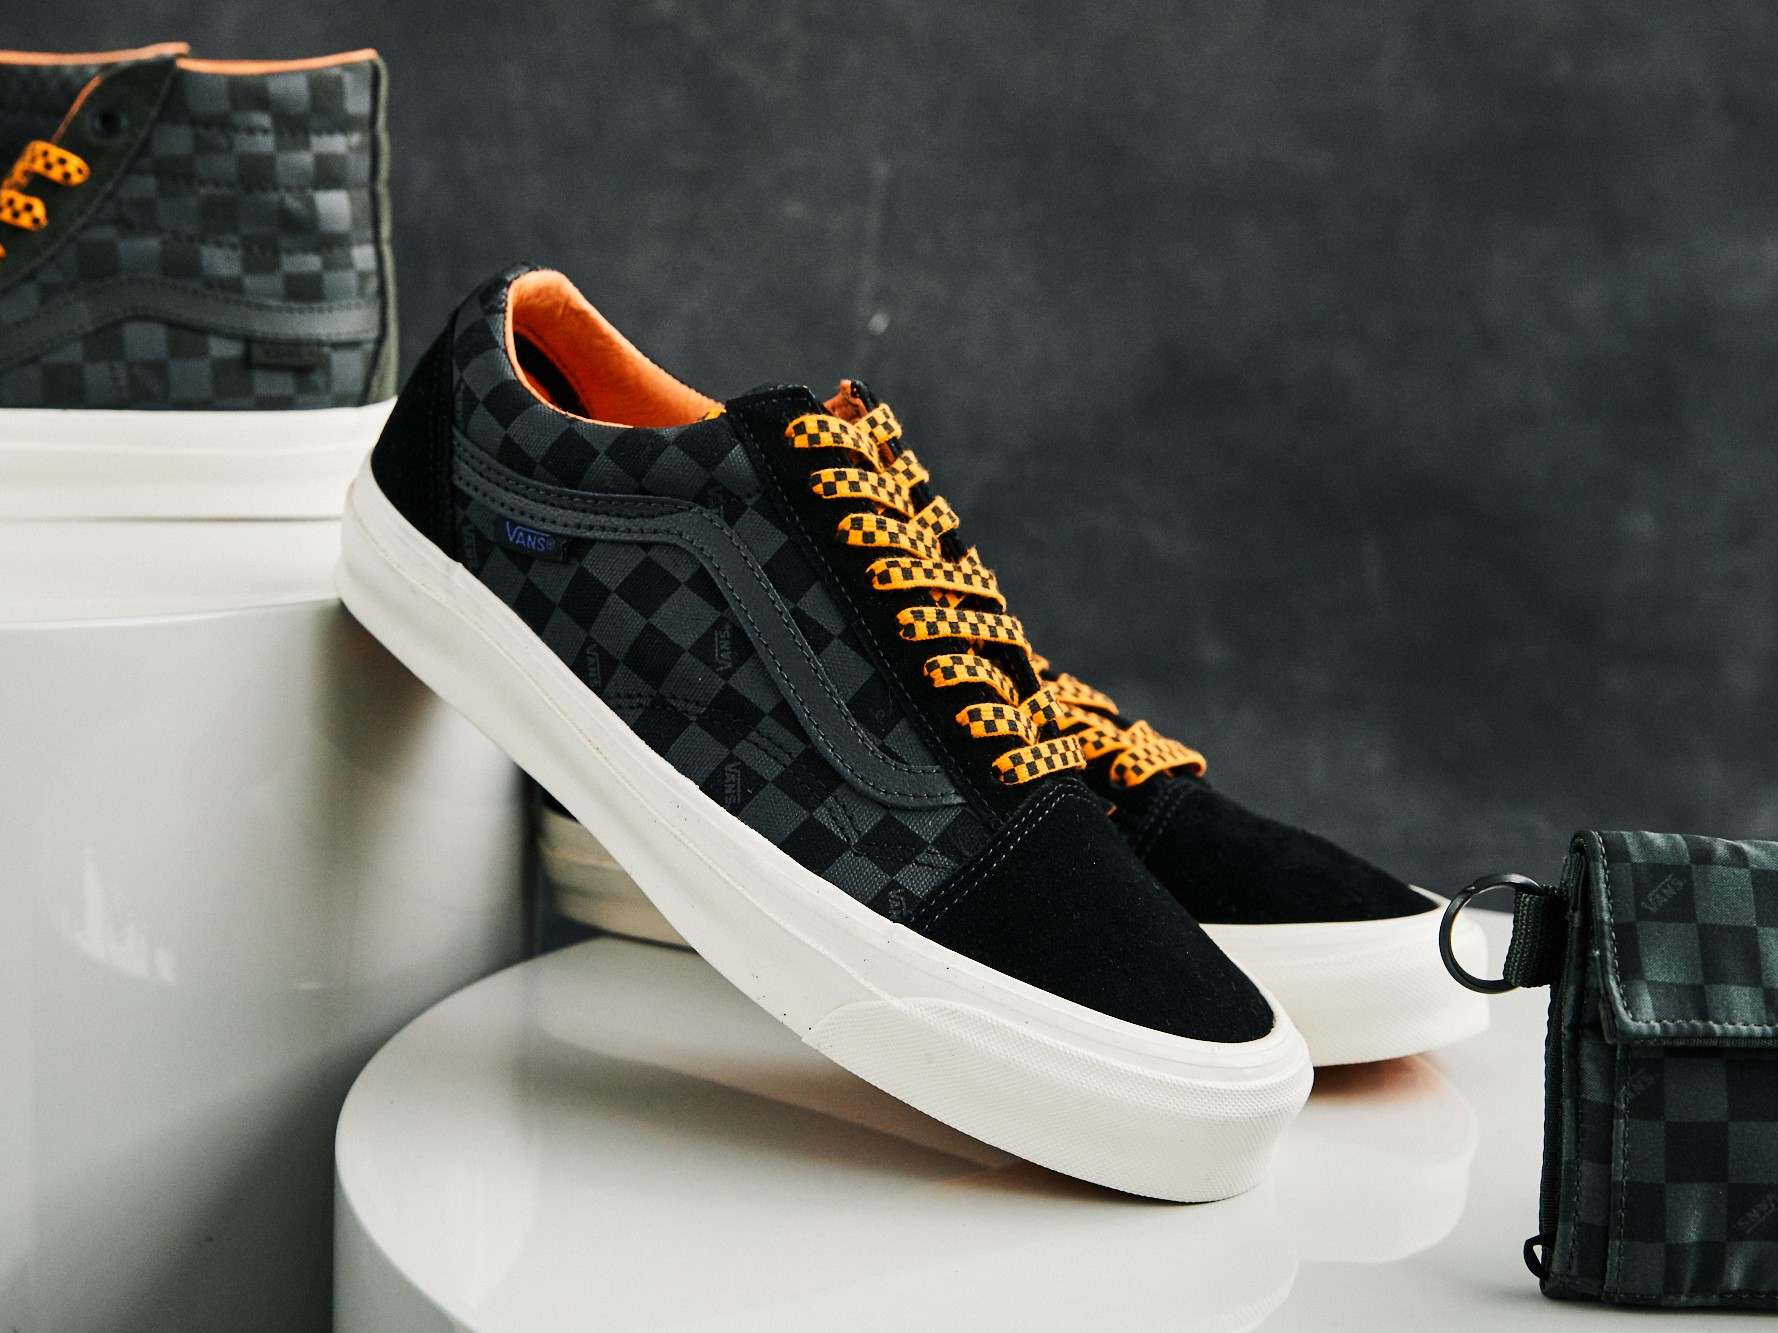 Vans made in Japan. Discover the new Vans x Porter collaboration ...